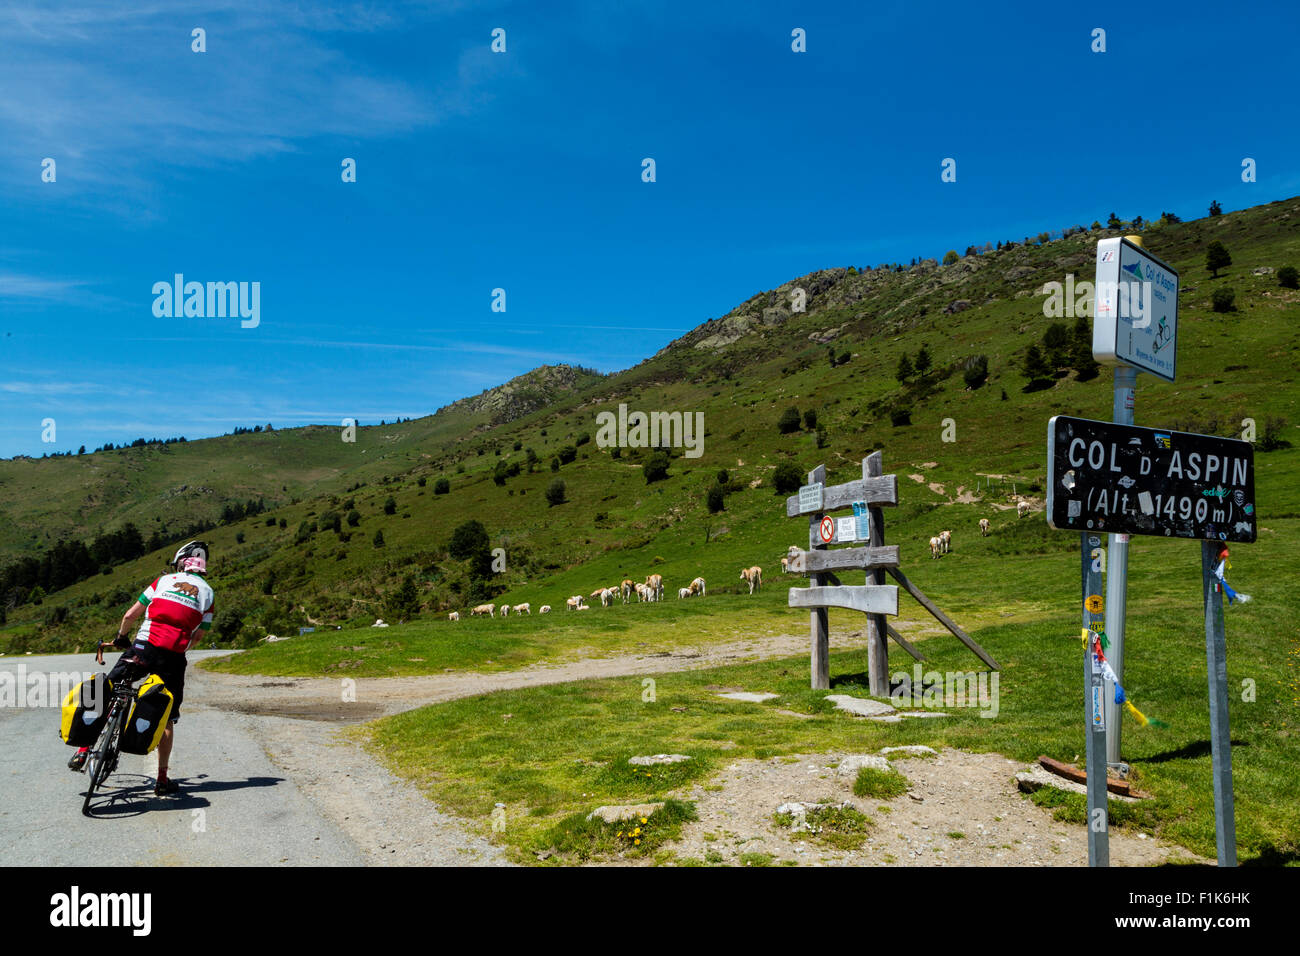 Col d Aspin, national park of Pyrenees, Hautes Pyrenees, France Stock Photo